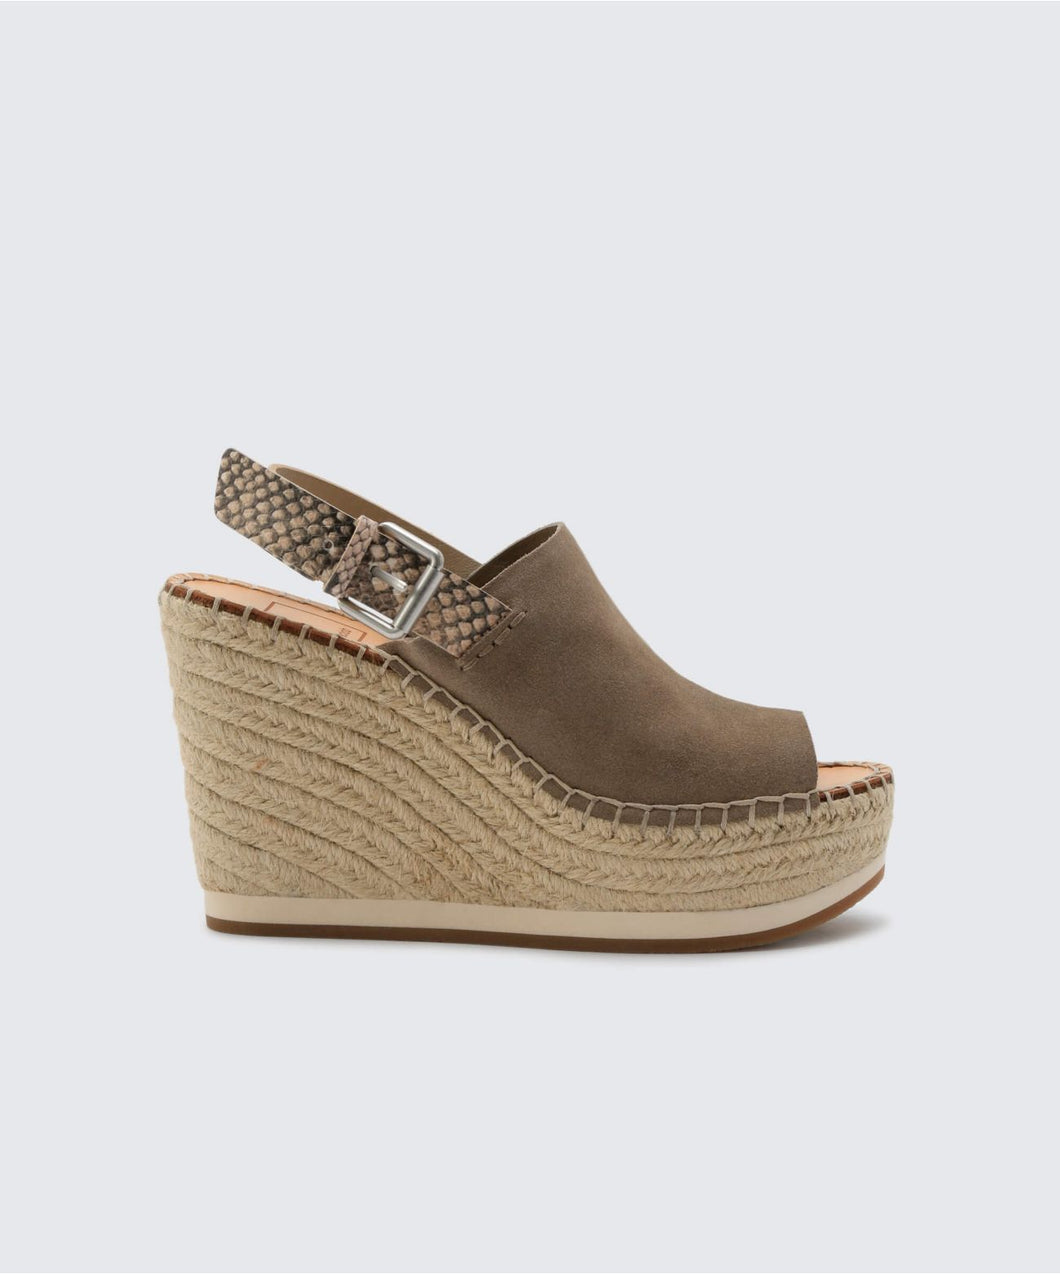 SHAN WEDGES IN SAGE -   Dolce Vita